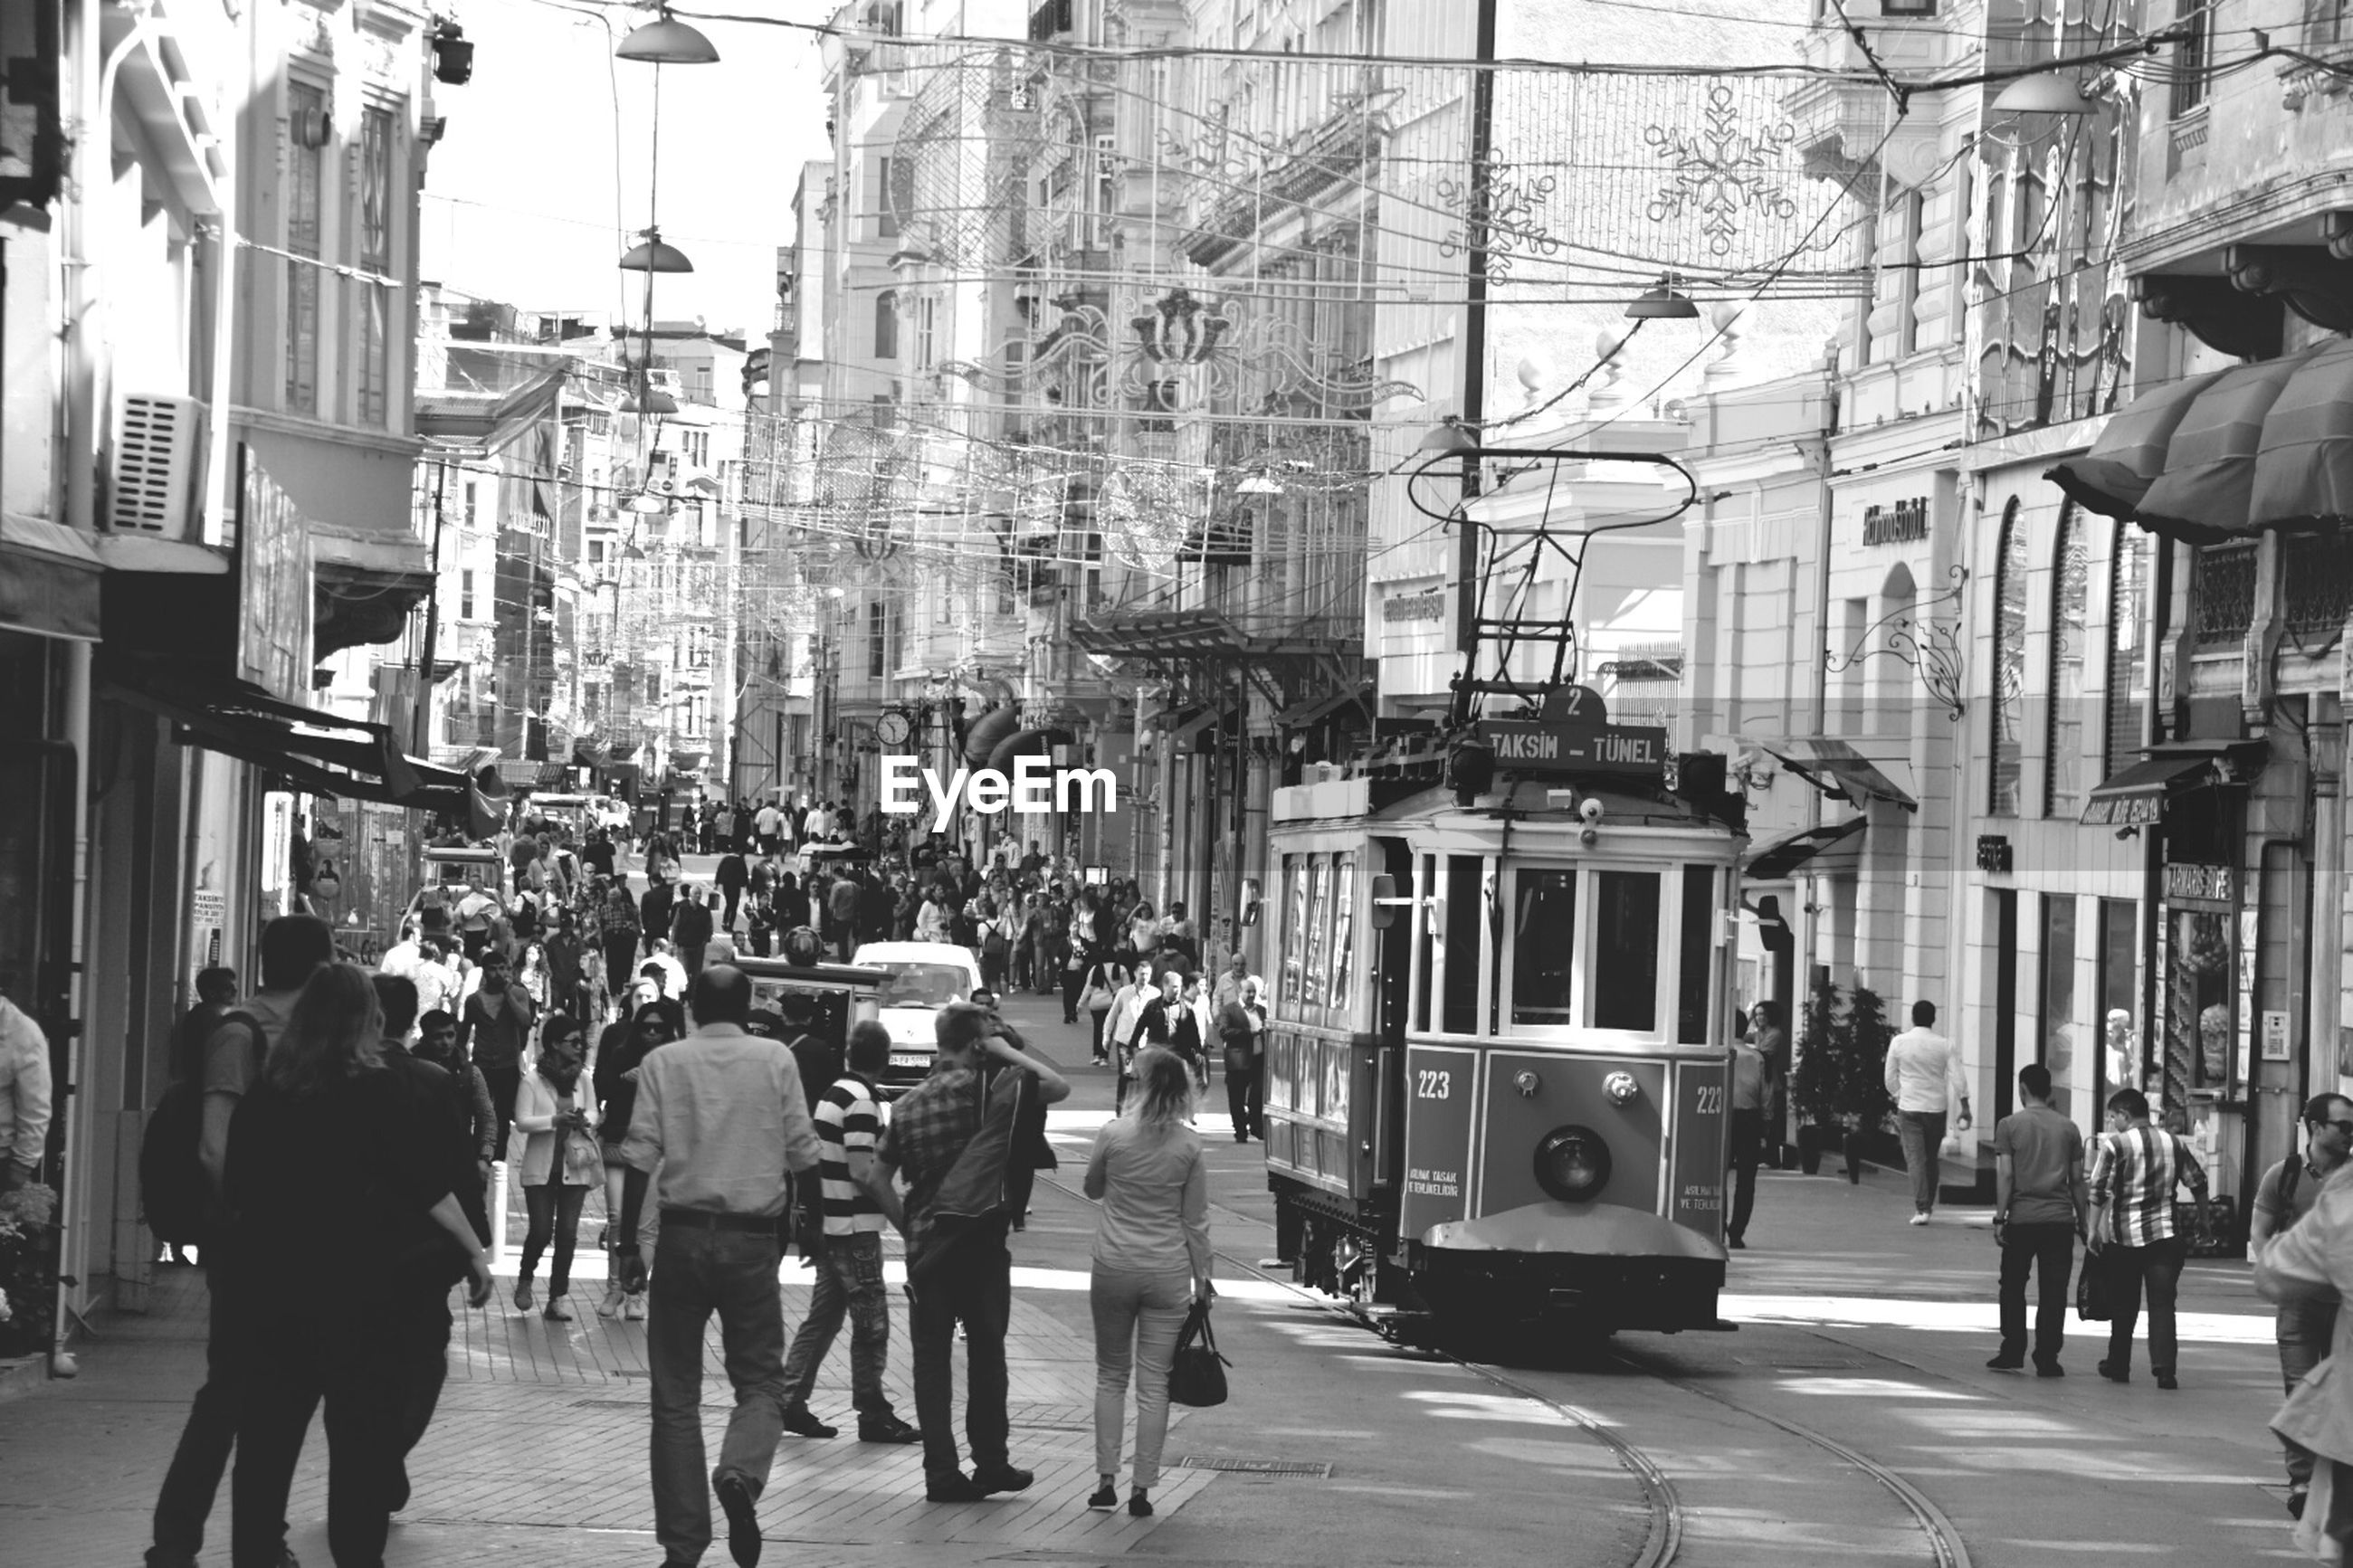 Trams moving on street in city